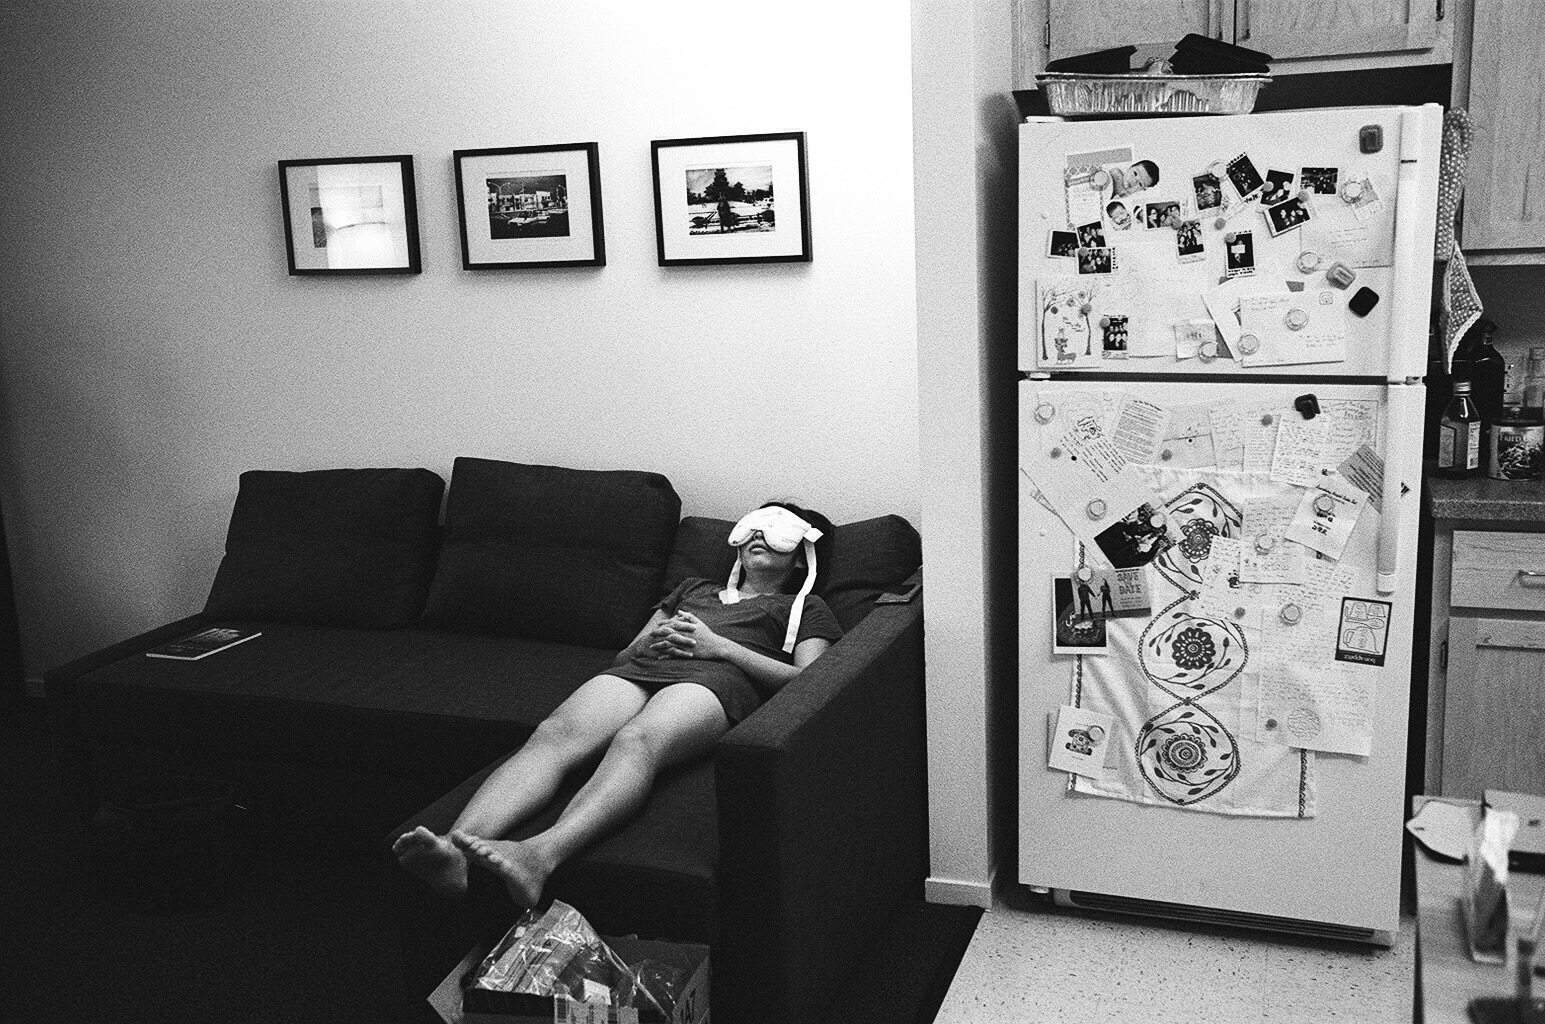 eric-kim-photography-cindy-project-black-and-white-3-eyemask-livingroom-refigerator-berkeley-couch